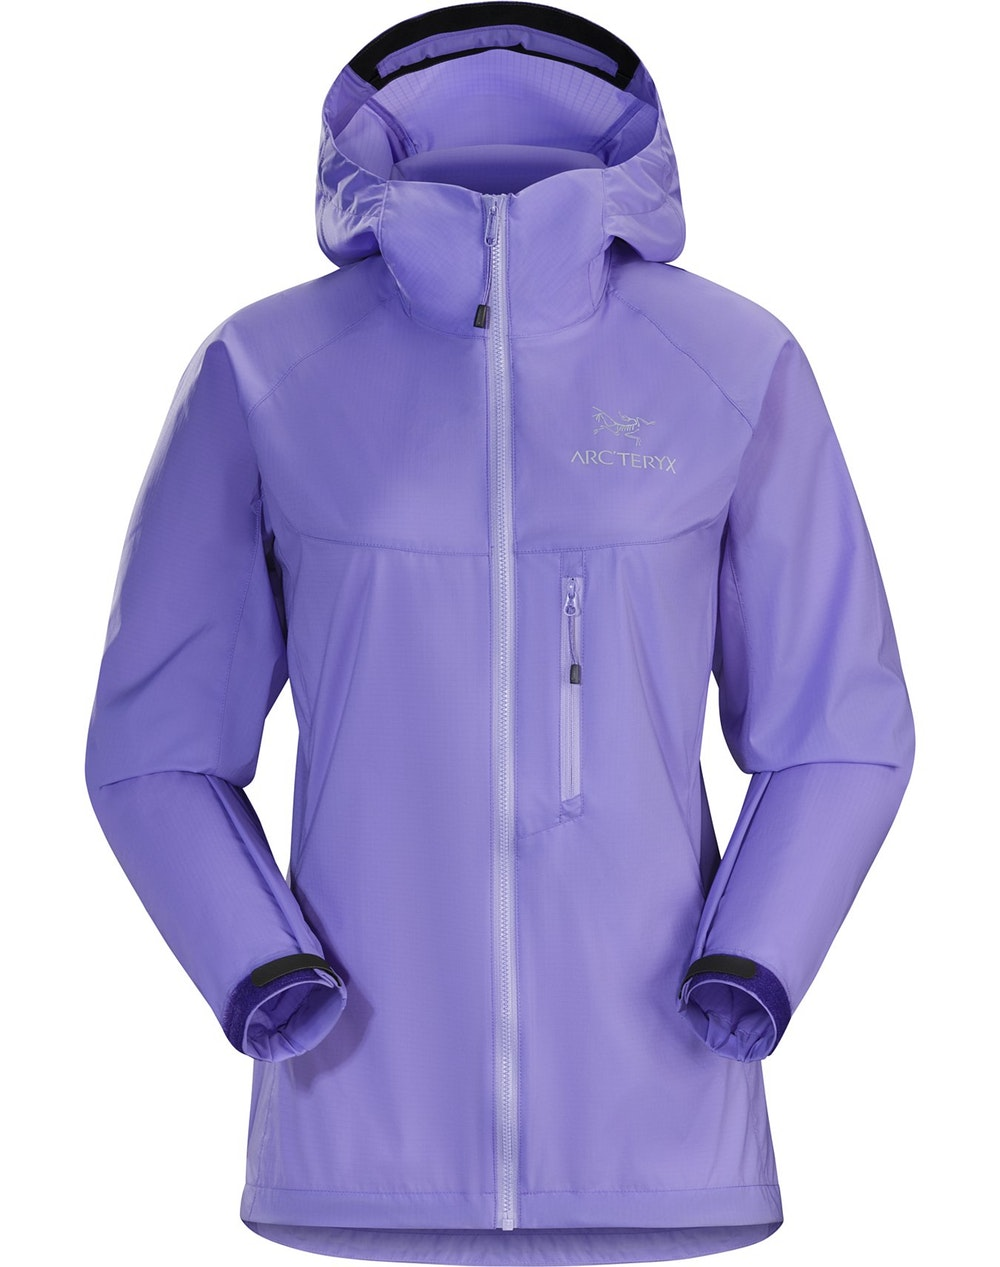 4ae7d47cb7 Arc'teryx Squamish Superlight Hoody - Womens, Jacket Style: Active, Warmth,  Active Warmth w/ Free S&H — 12 models